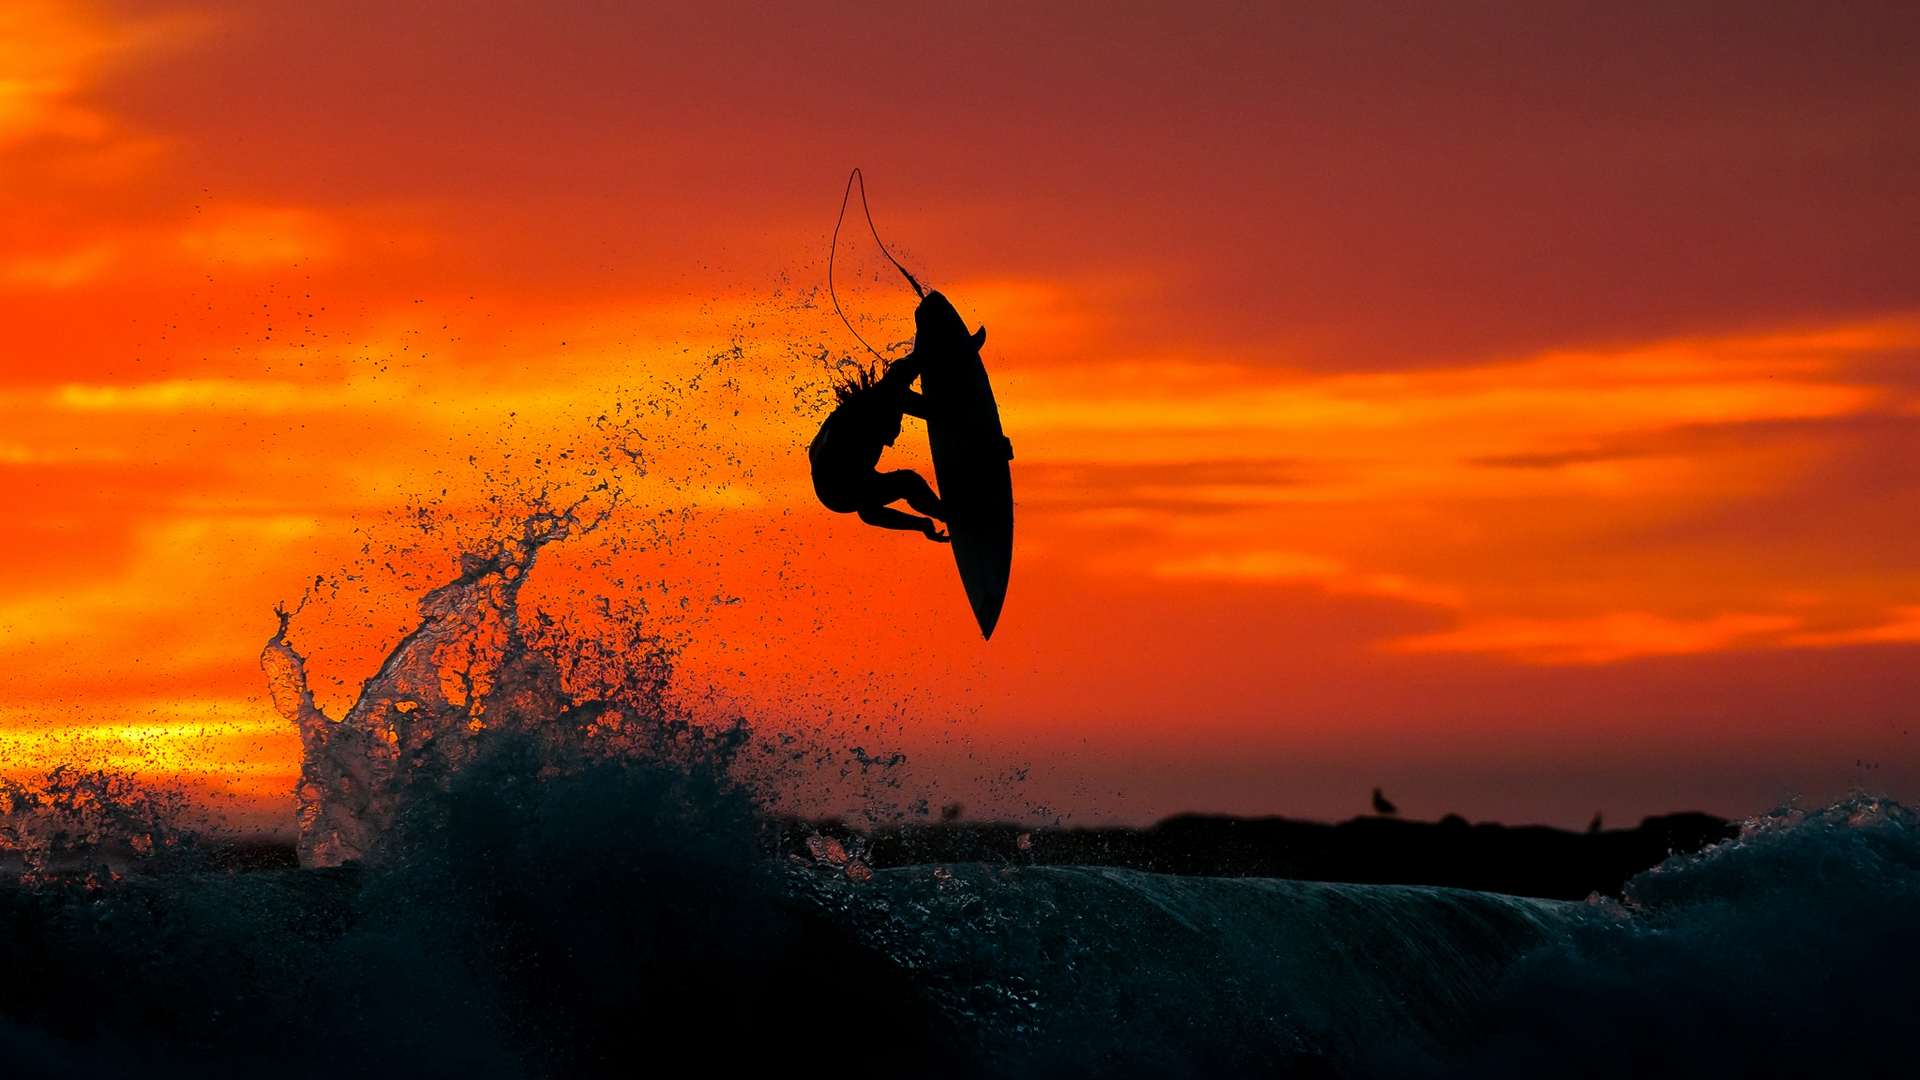 Surfing Wallpapers   Wallpaper High Definition High Quality 1920x1080